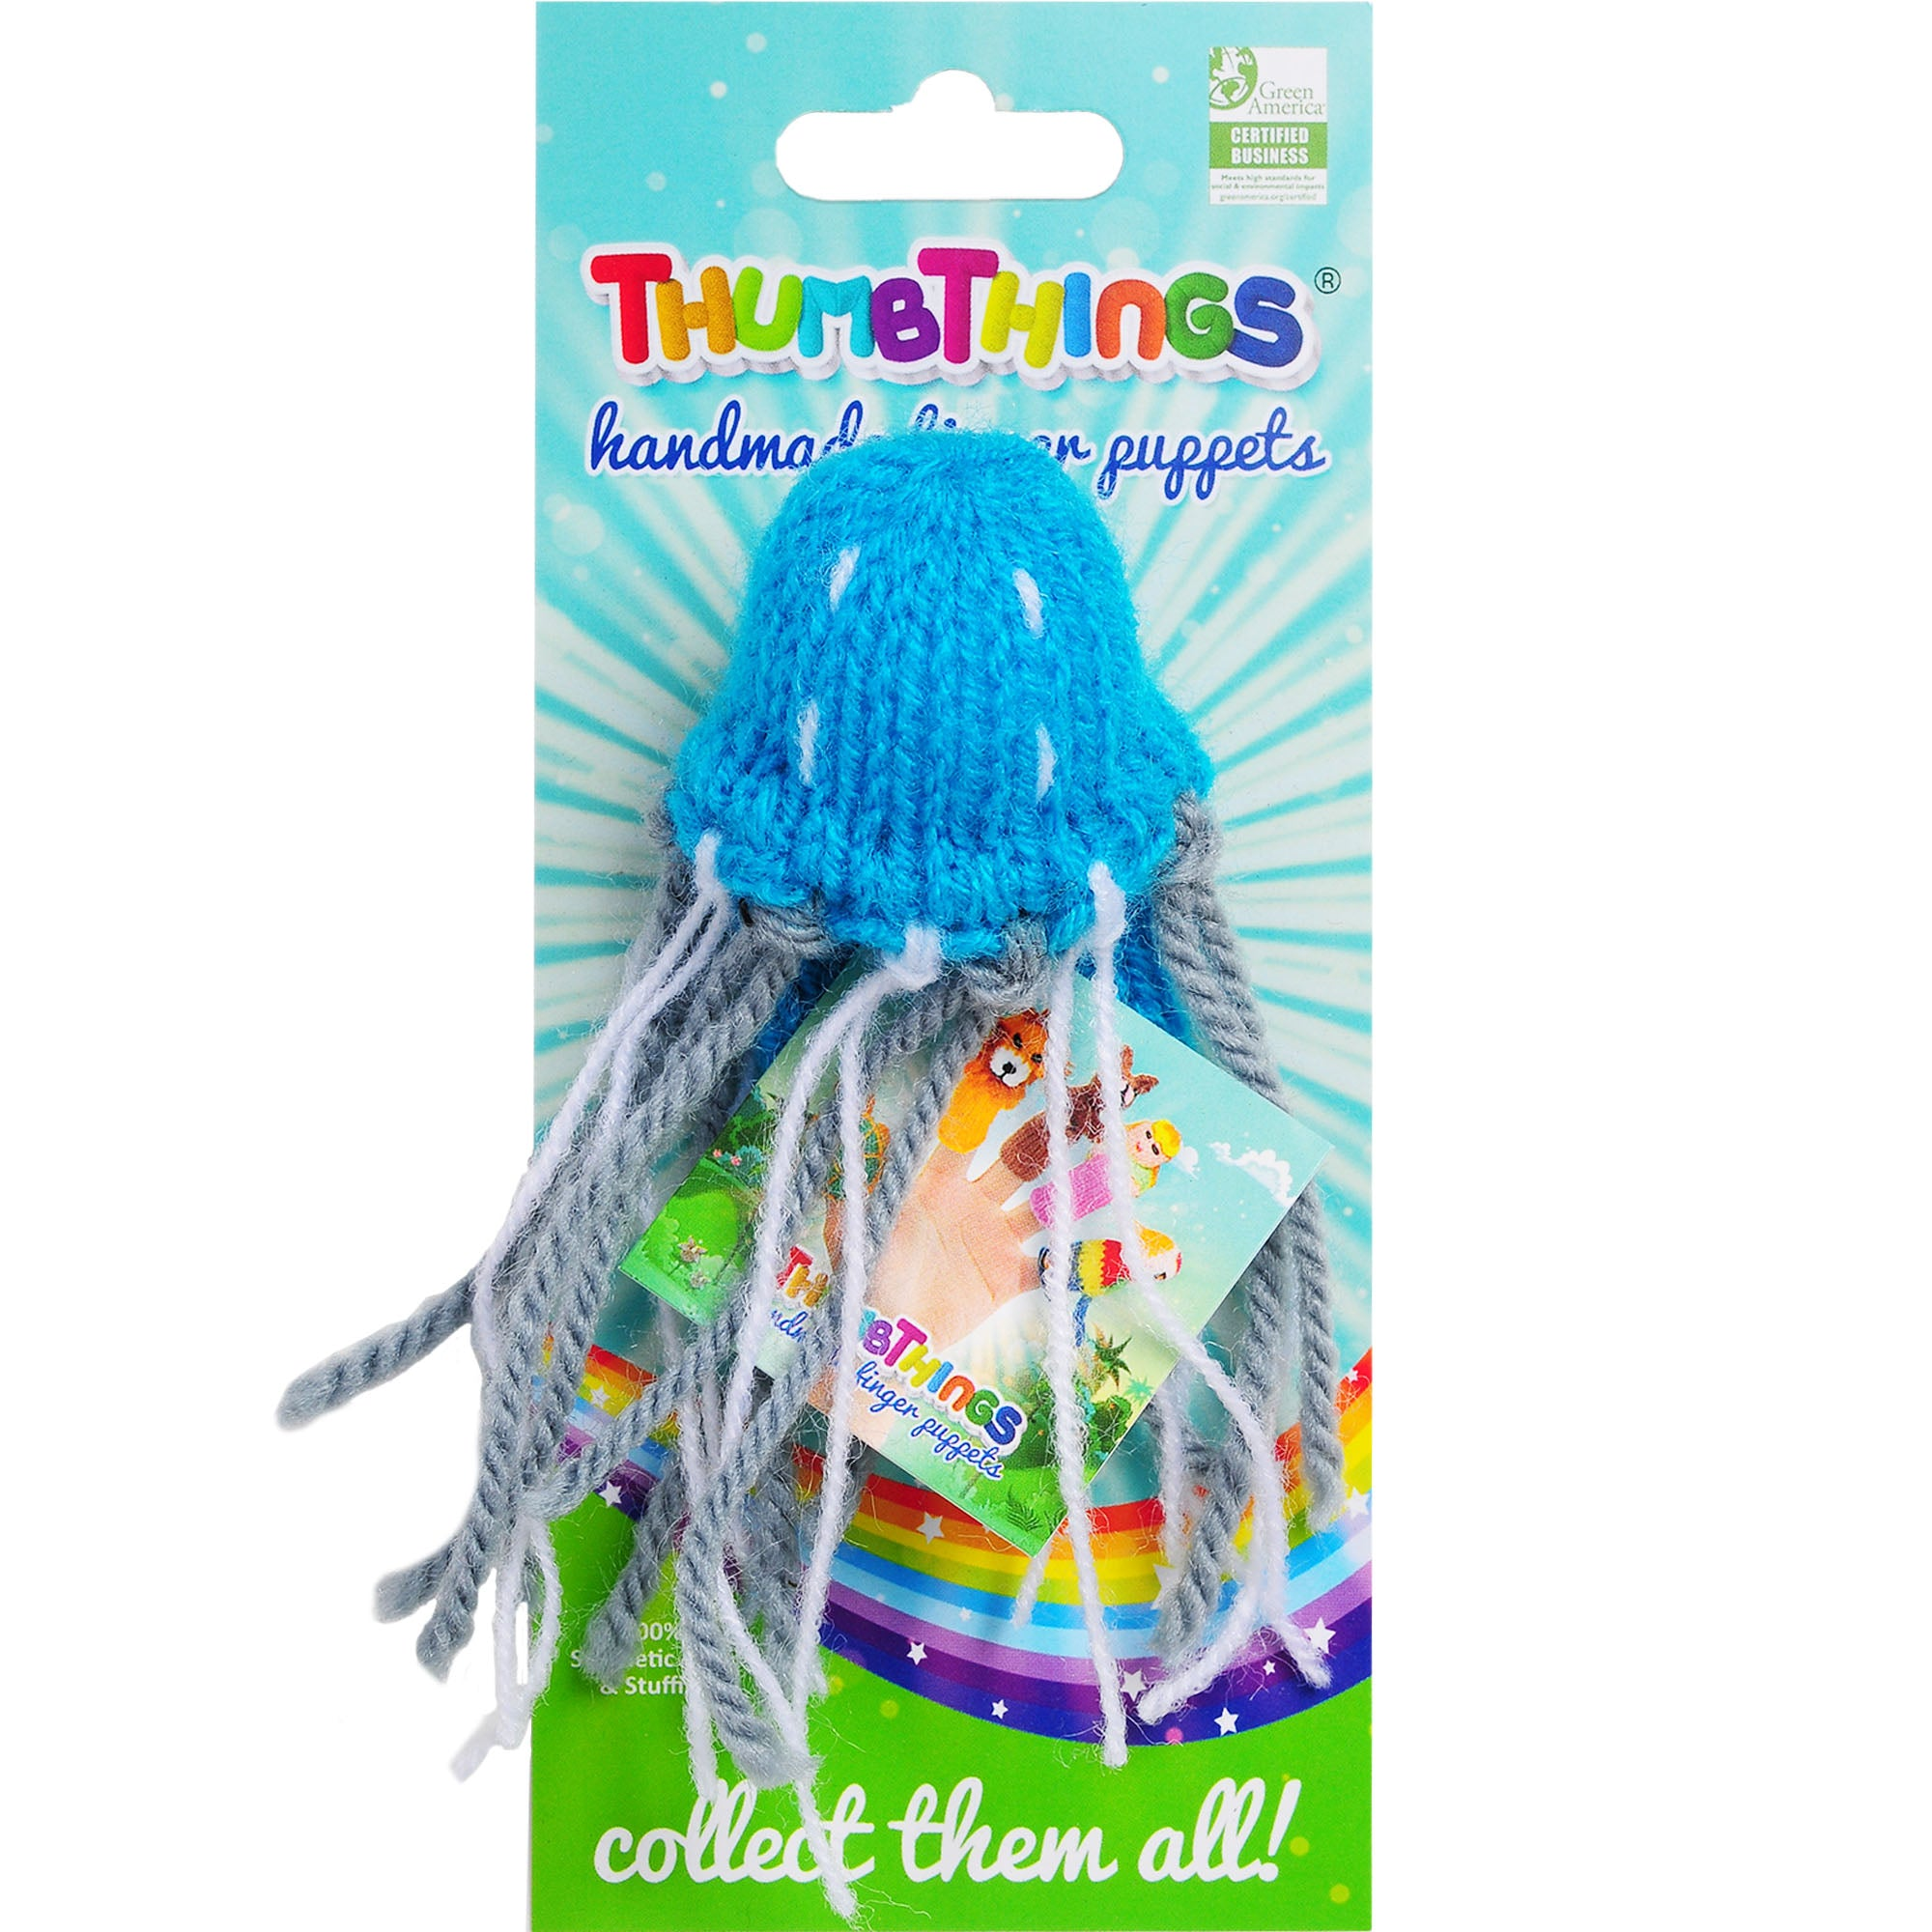 Thumbthings Jellyfish Finger Puppet